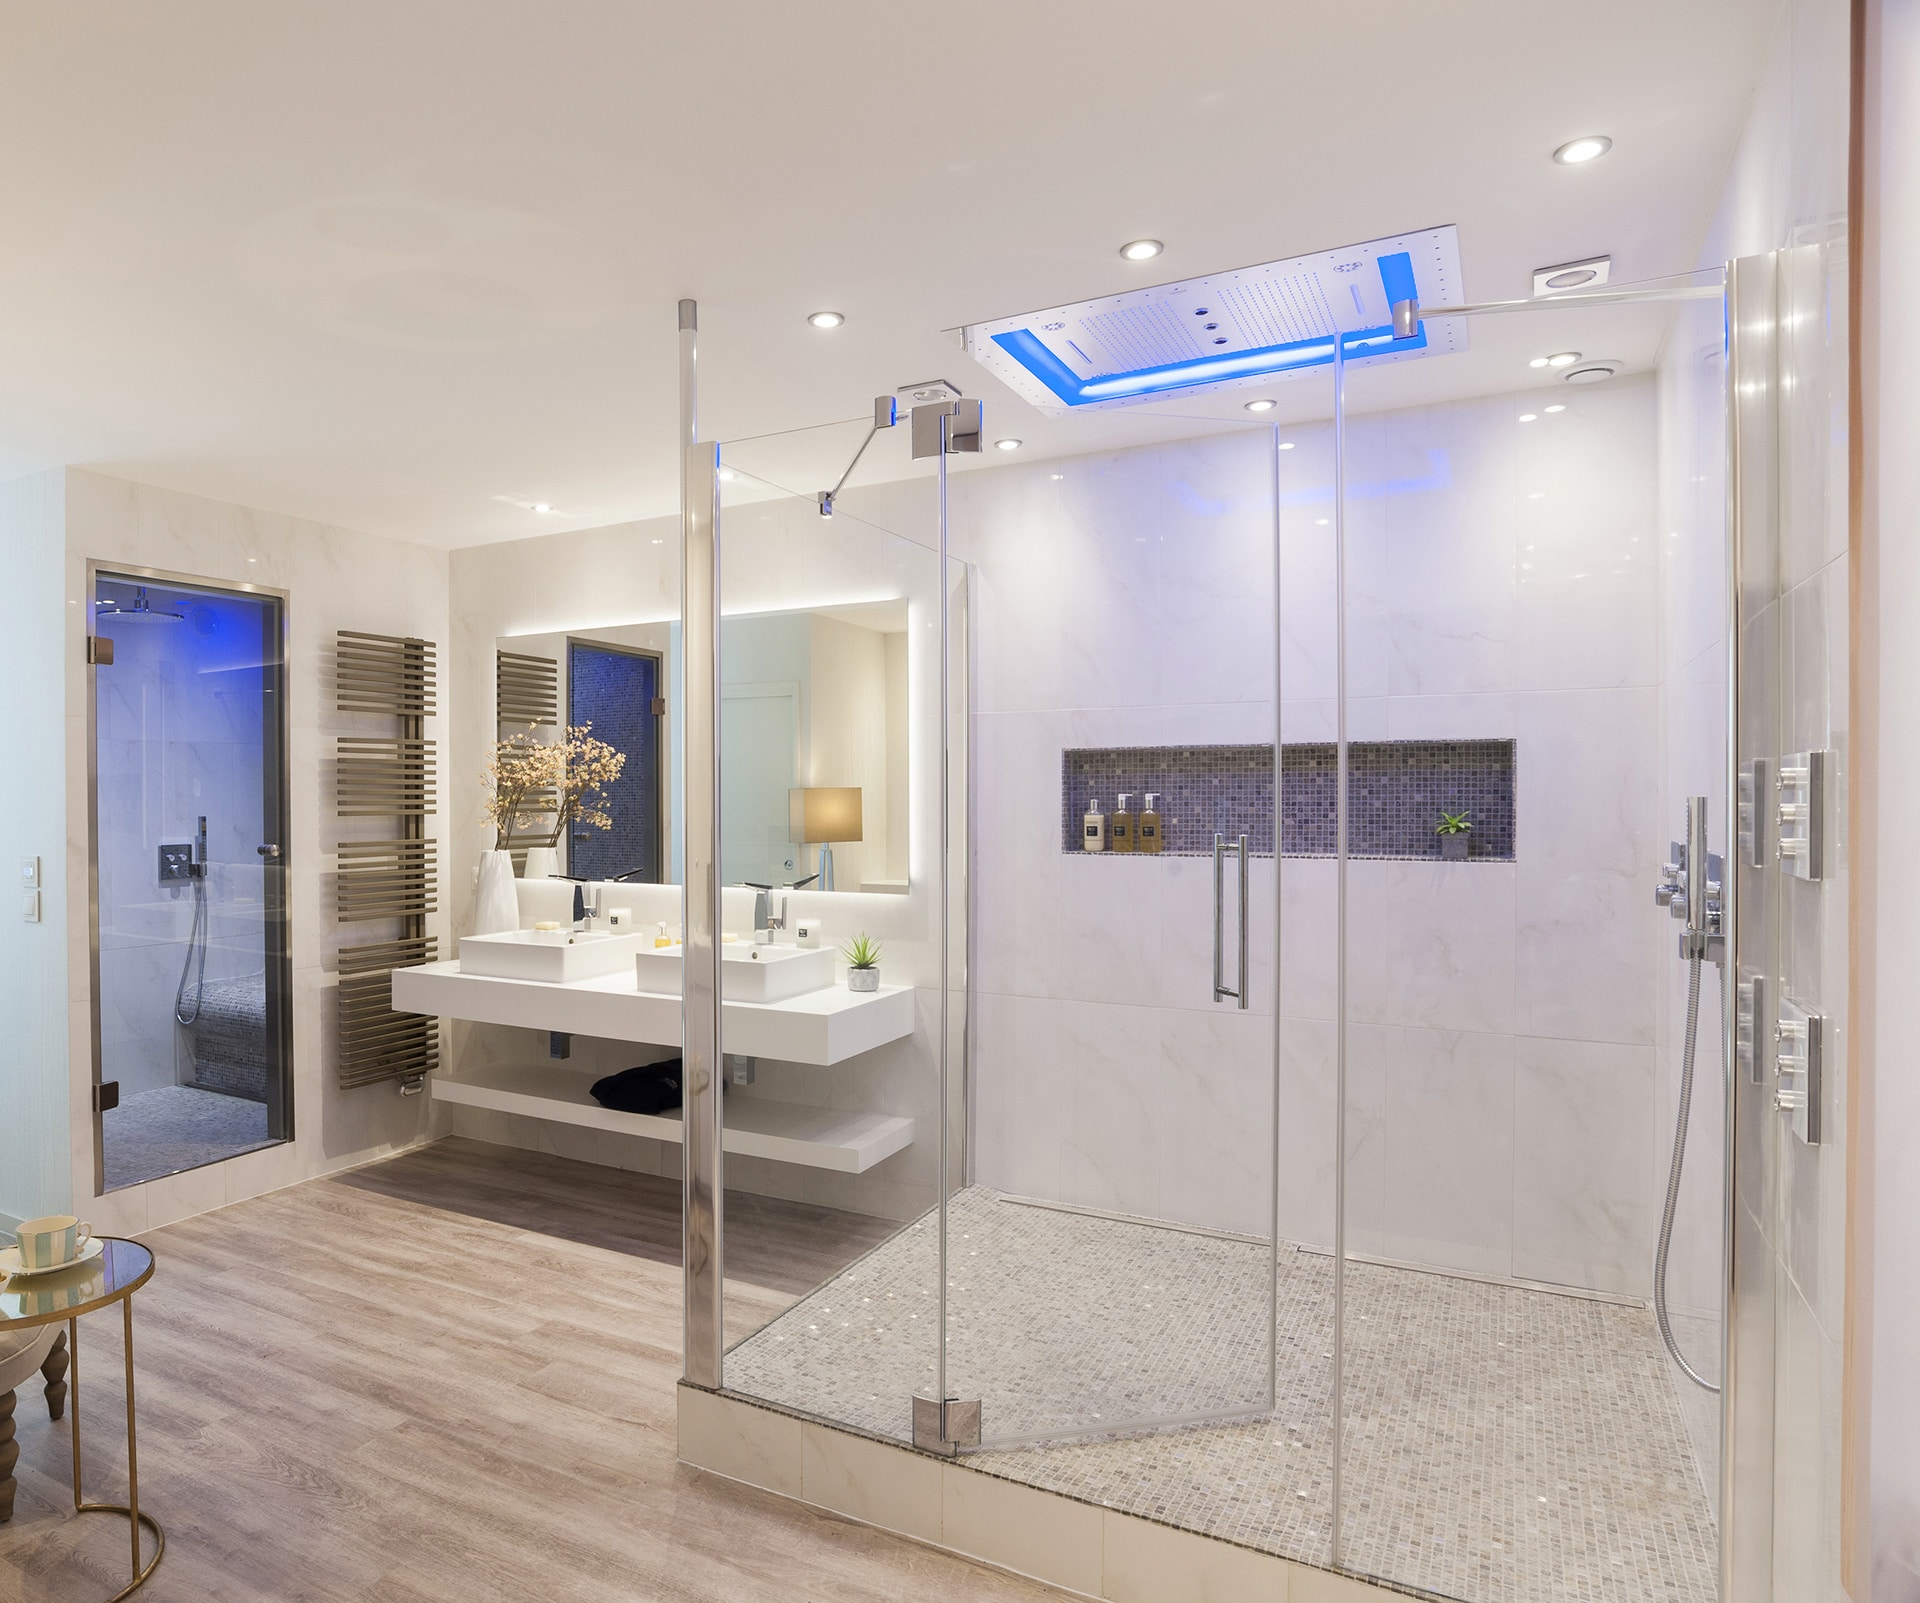 GROHE_SUITE-PARENTALE-SHOX-ROOM-COURBEVOIE_2